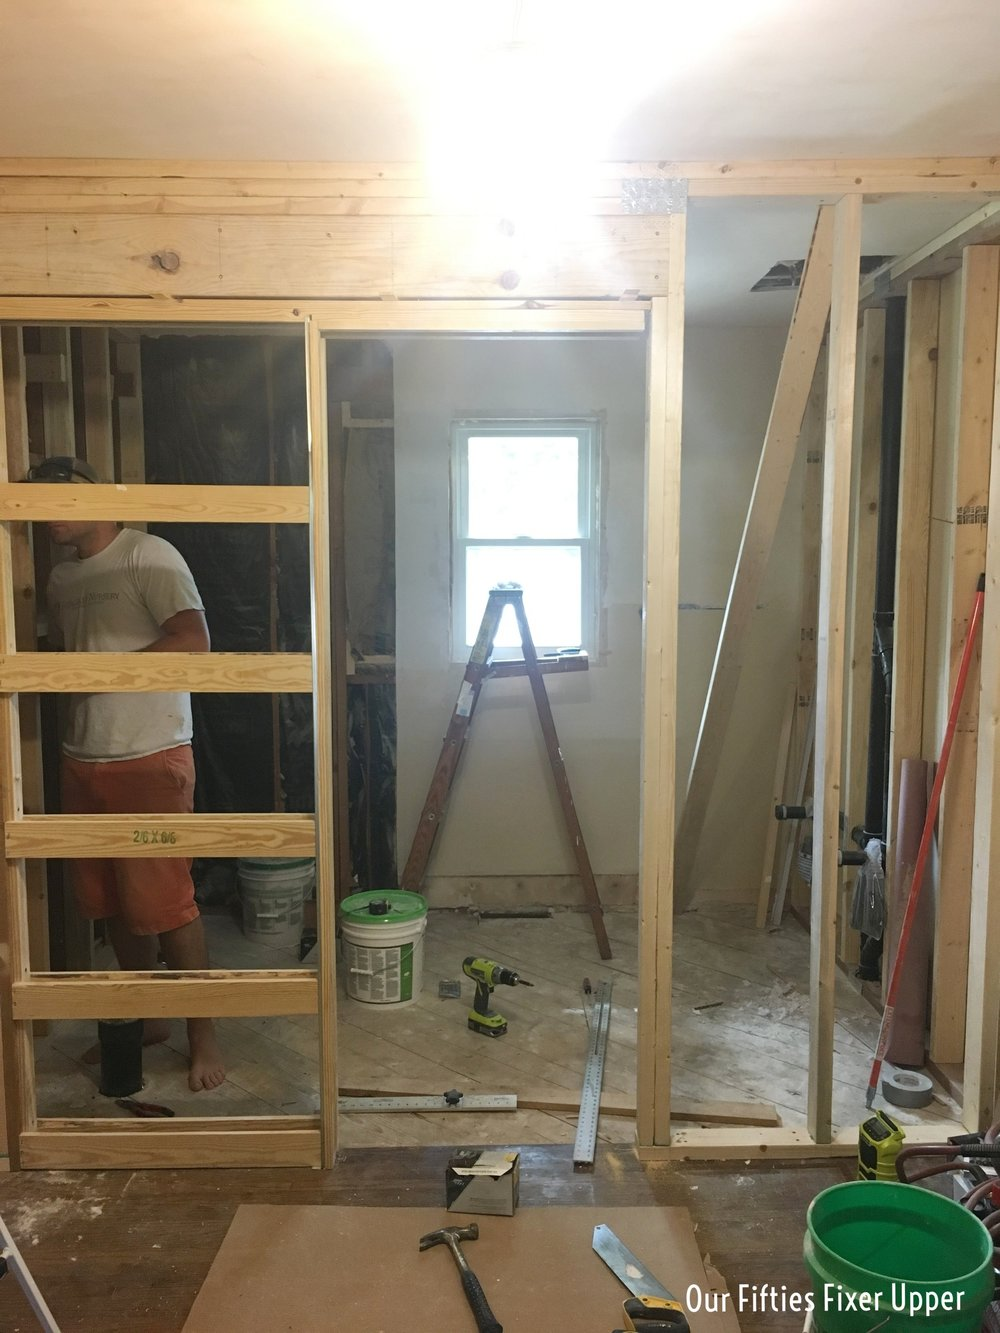 Wall between closet and bathroom framed in